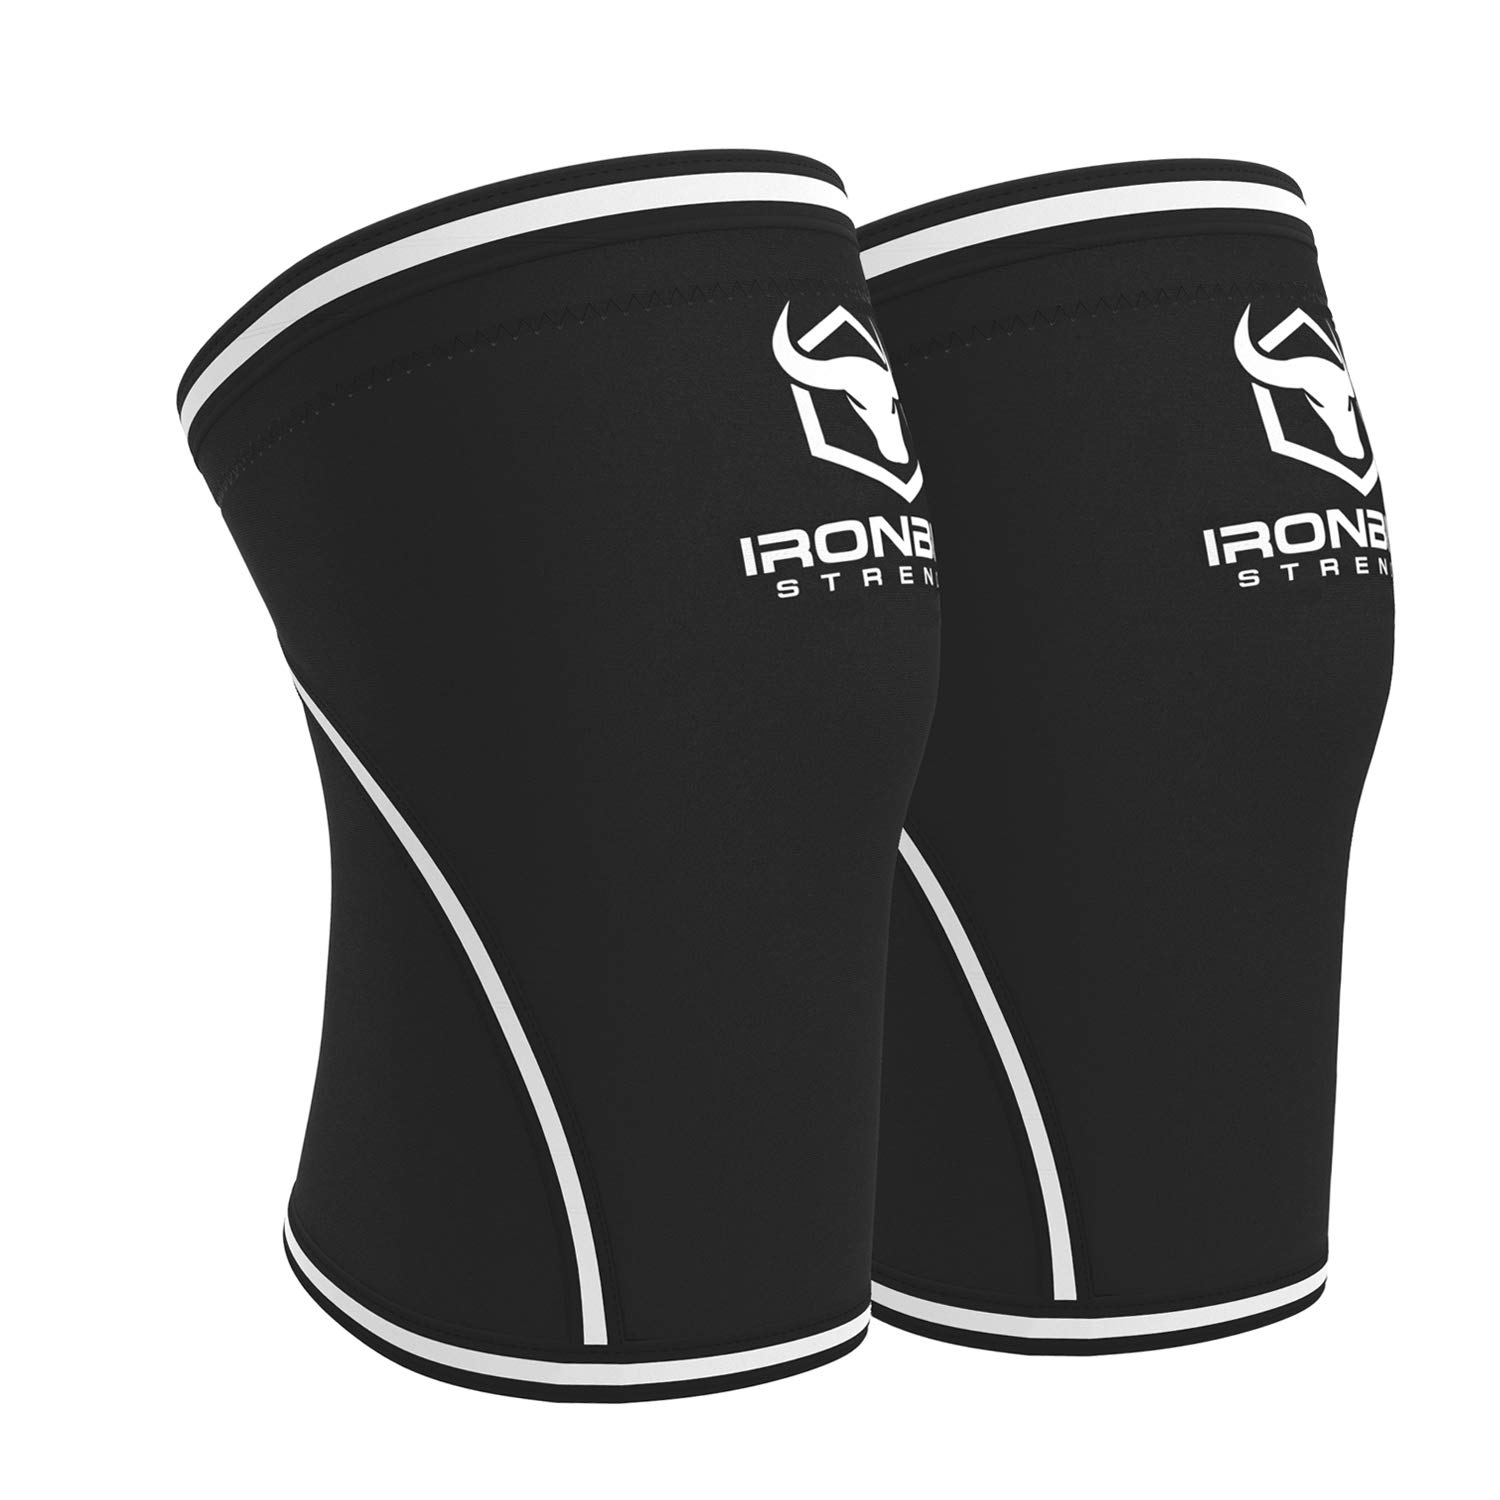 Knee Sleeves 7mm (1 Pair) - High Performance Knee Sleeve Support for Weight Lifting, Cross Training & Powerlifting - Best Knee Wraps & Straps Compression - for Men and Women (Black/White, X-Large) by Iron Bull Strength